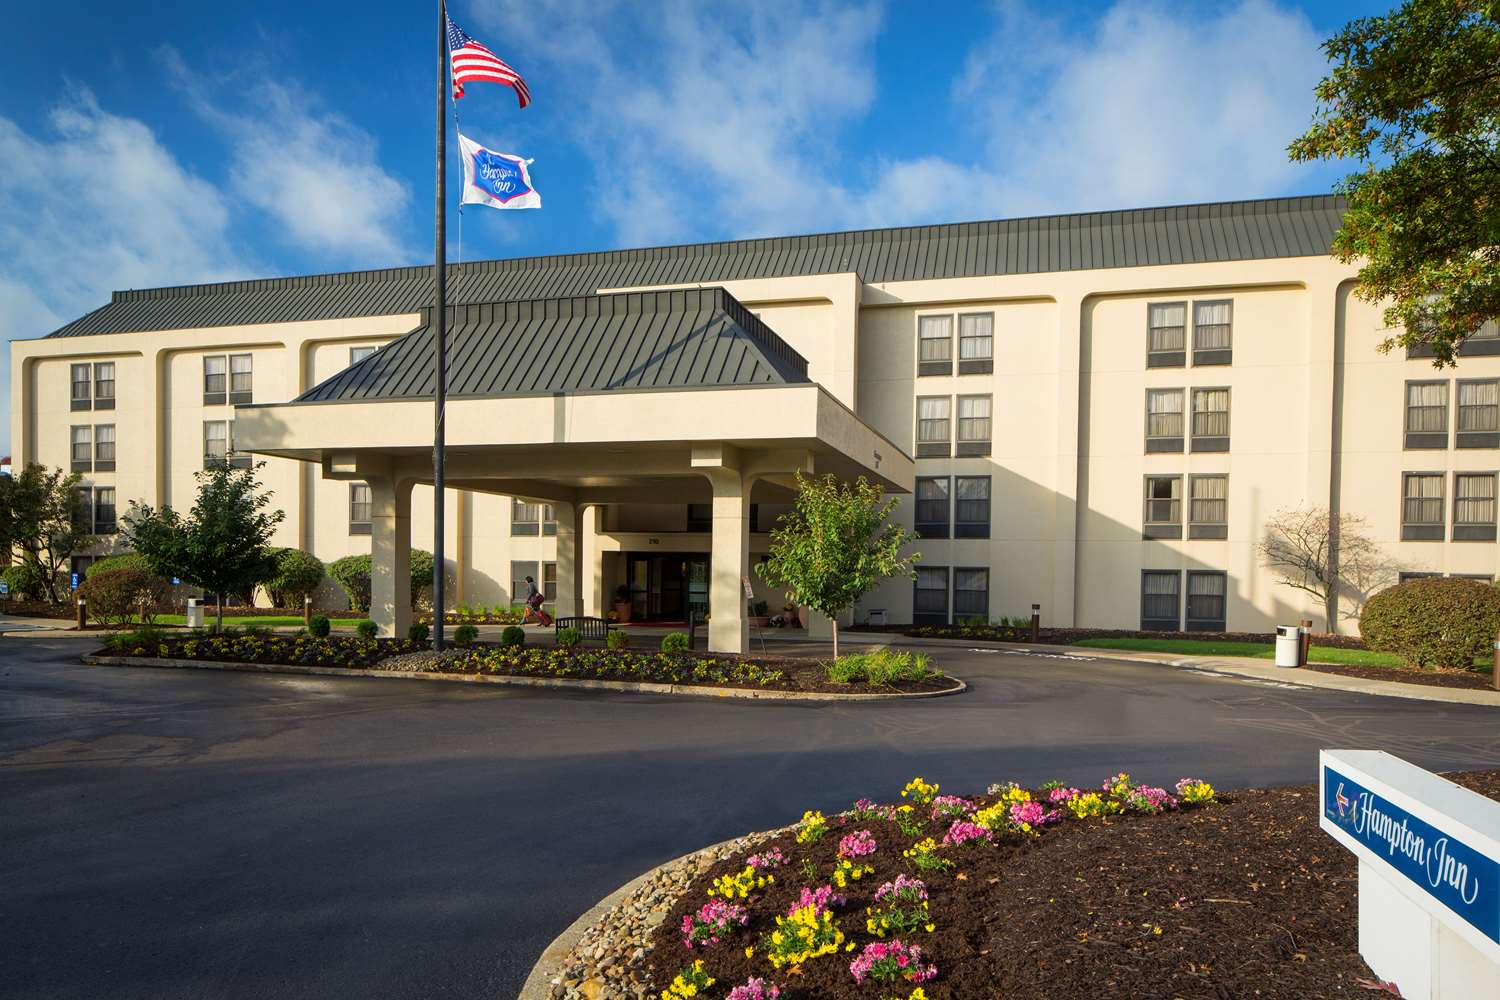 Hampton Inn Cranberry Township